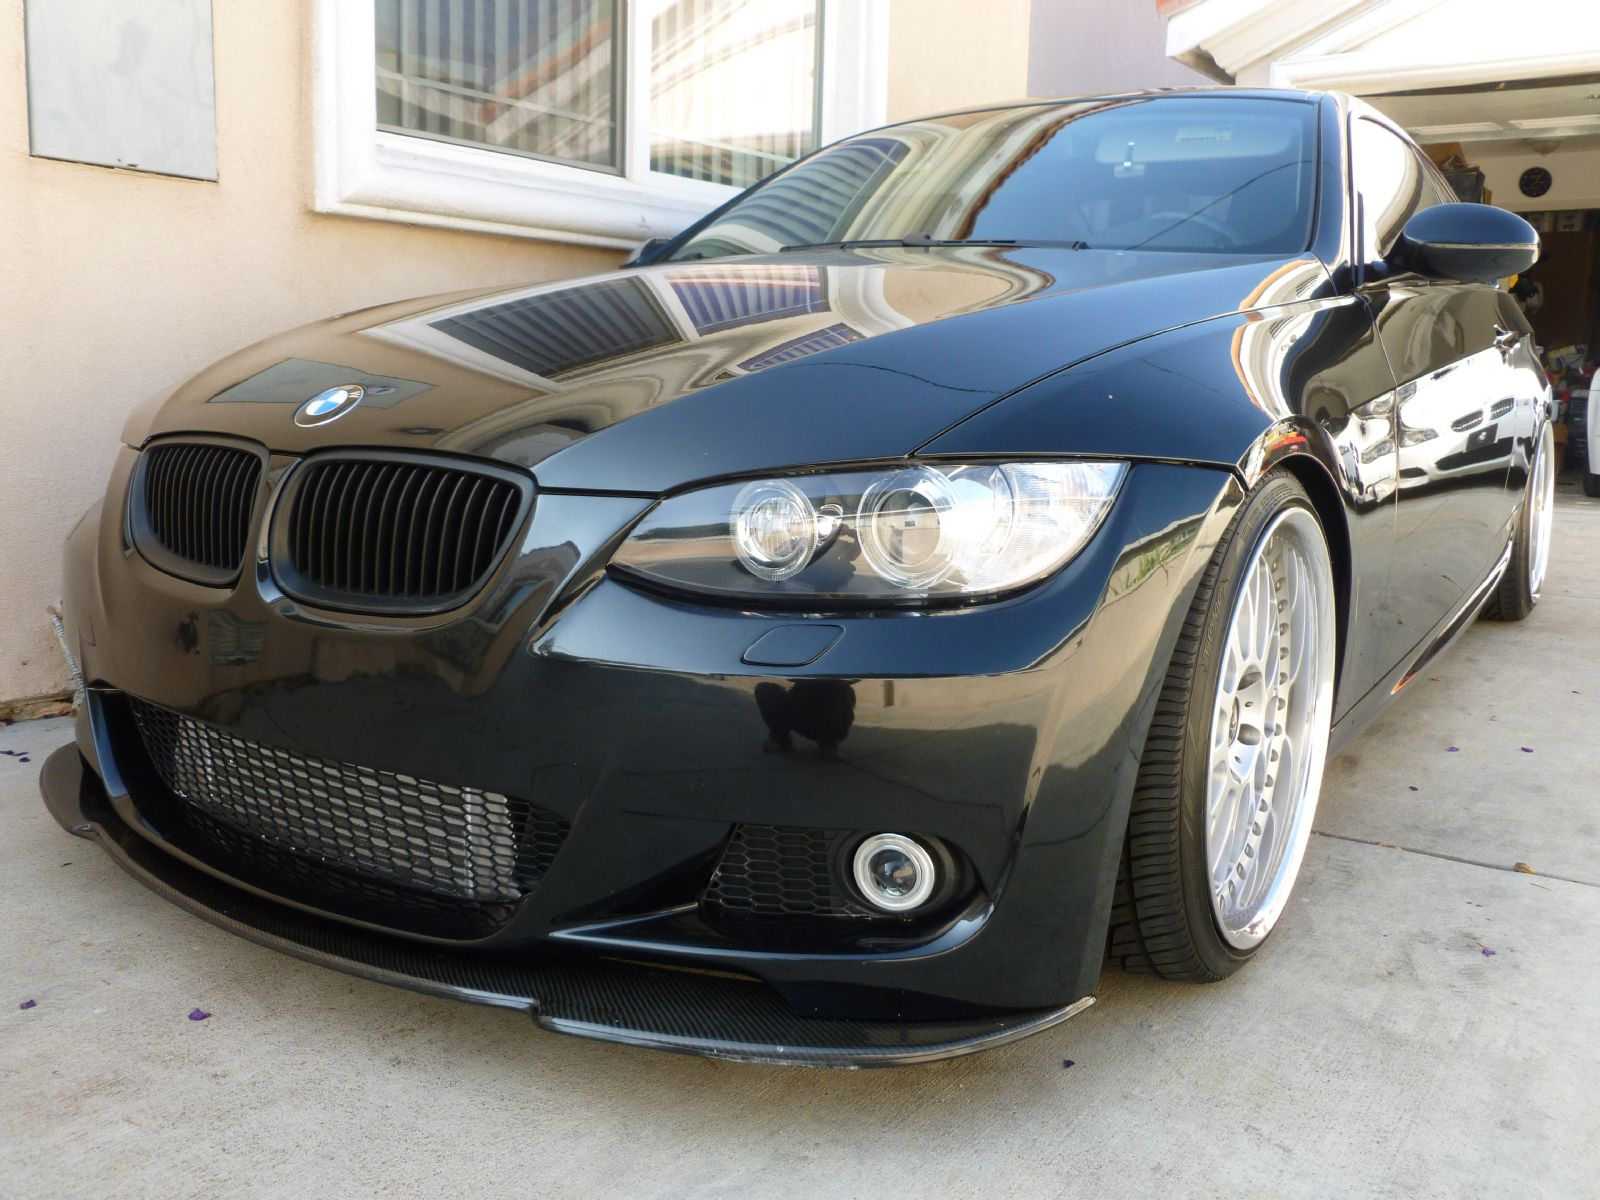 2009 bmw twin turbo 335 coupe for sale rosemead california. Black Bedroom Furniture Sets. Home Design Ideas